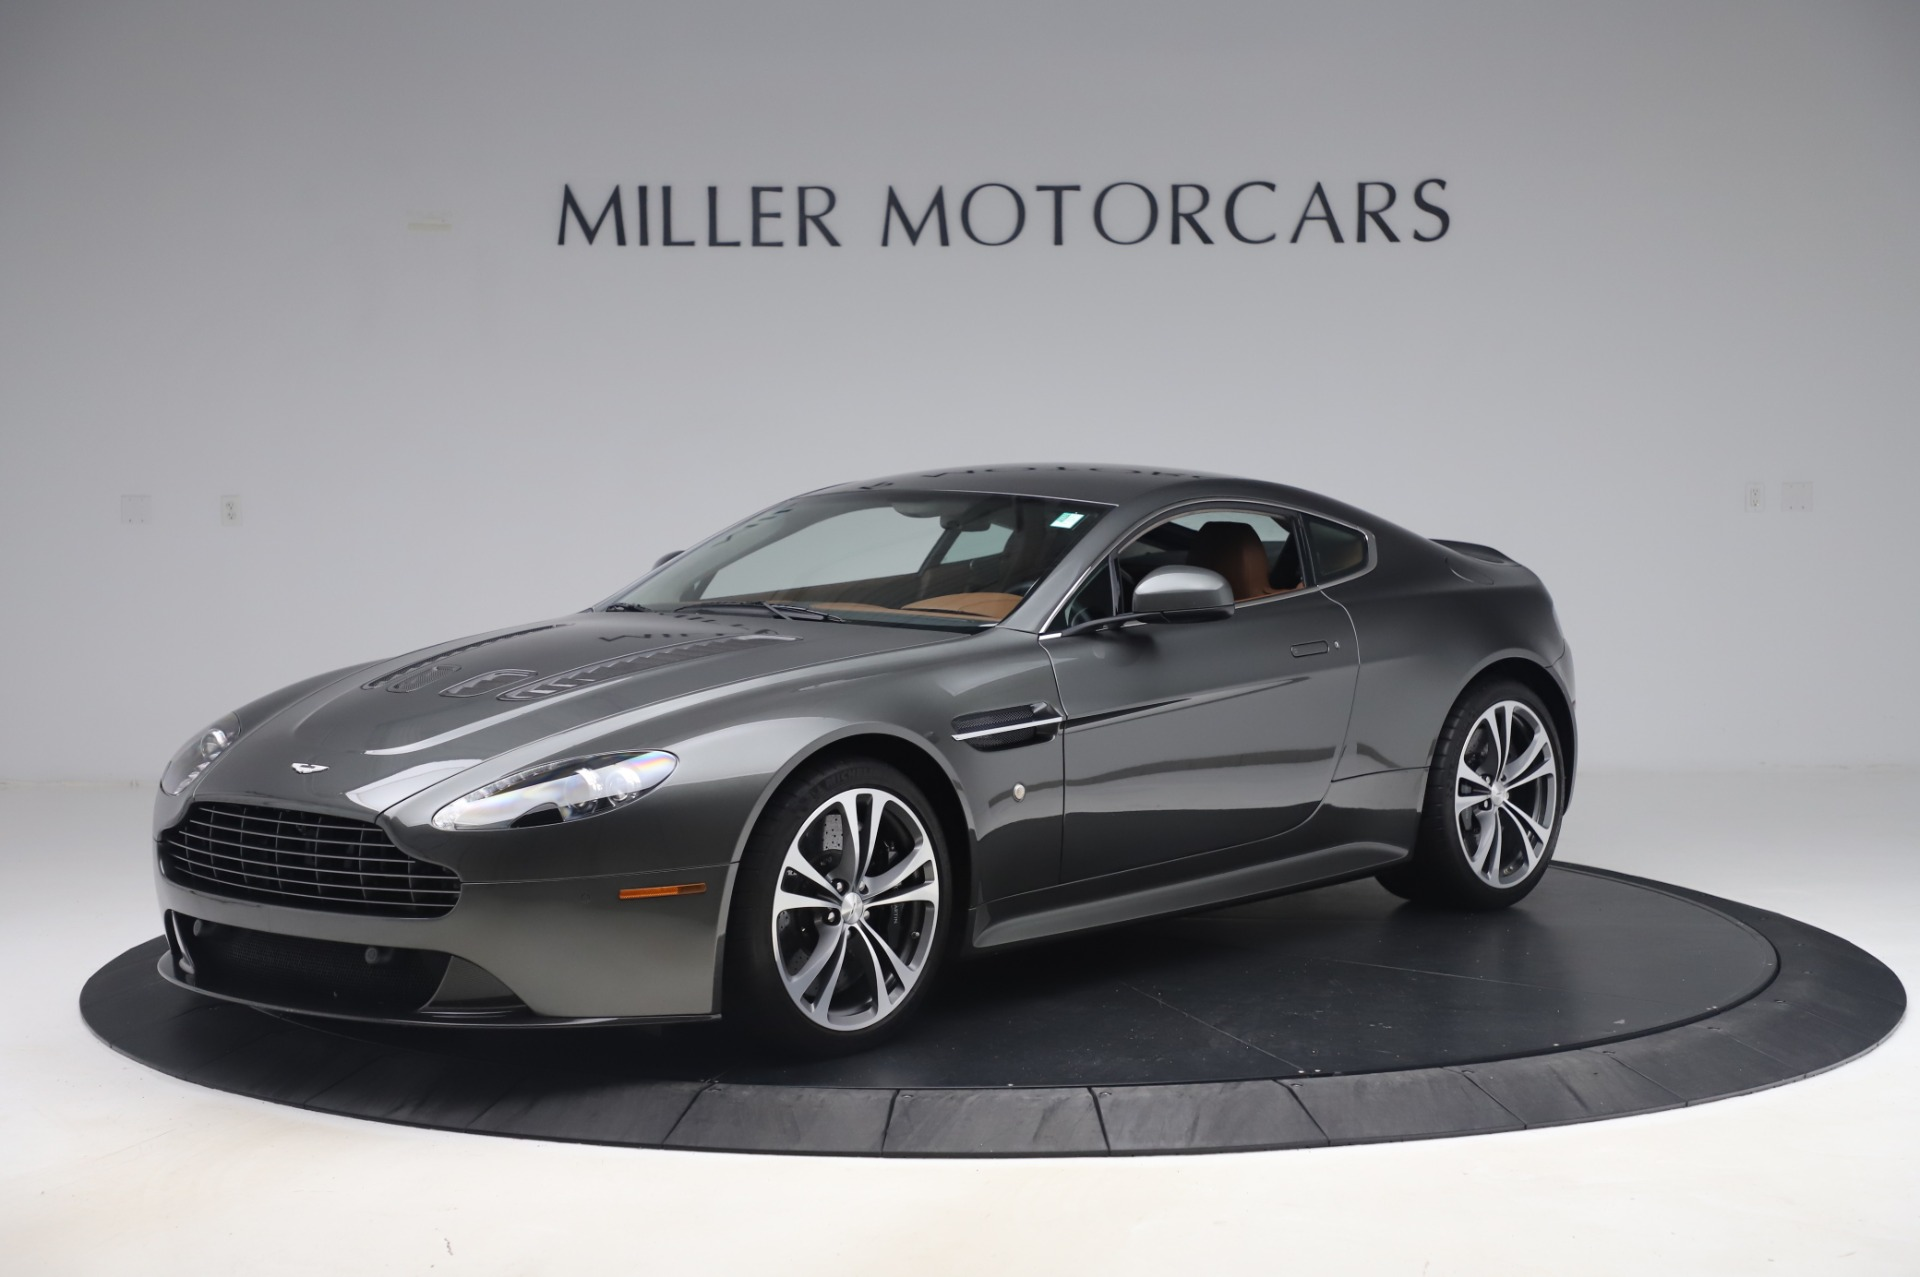 Used 2011 Aston Martin V12 Vantage Coupe for sale $108,990 at Alfa Romeo of Westport in Westport CT 06880 1